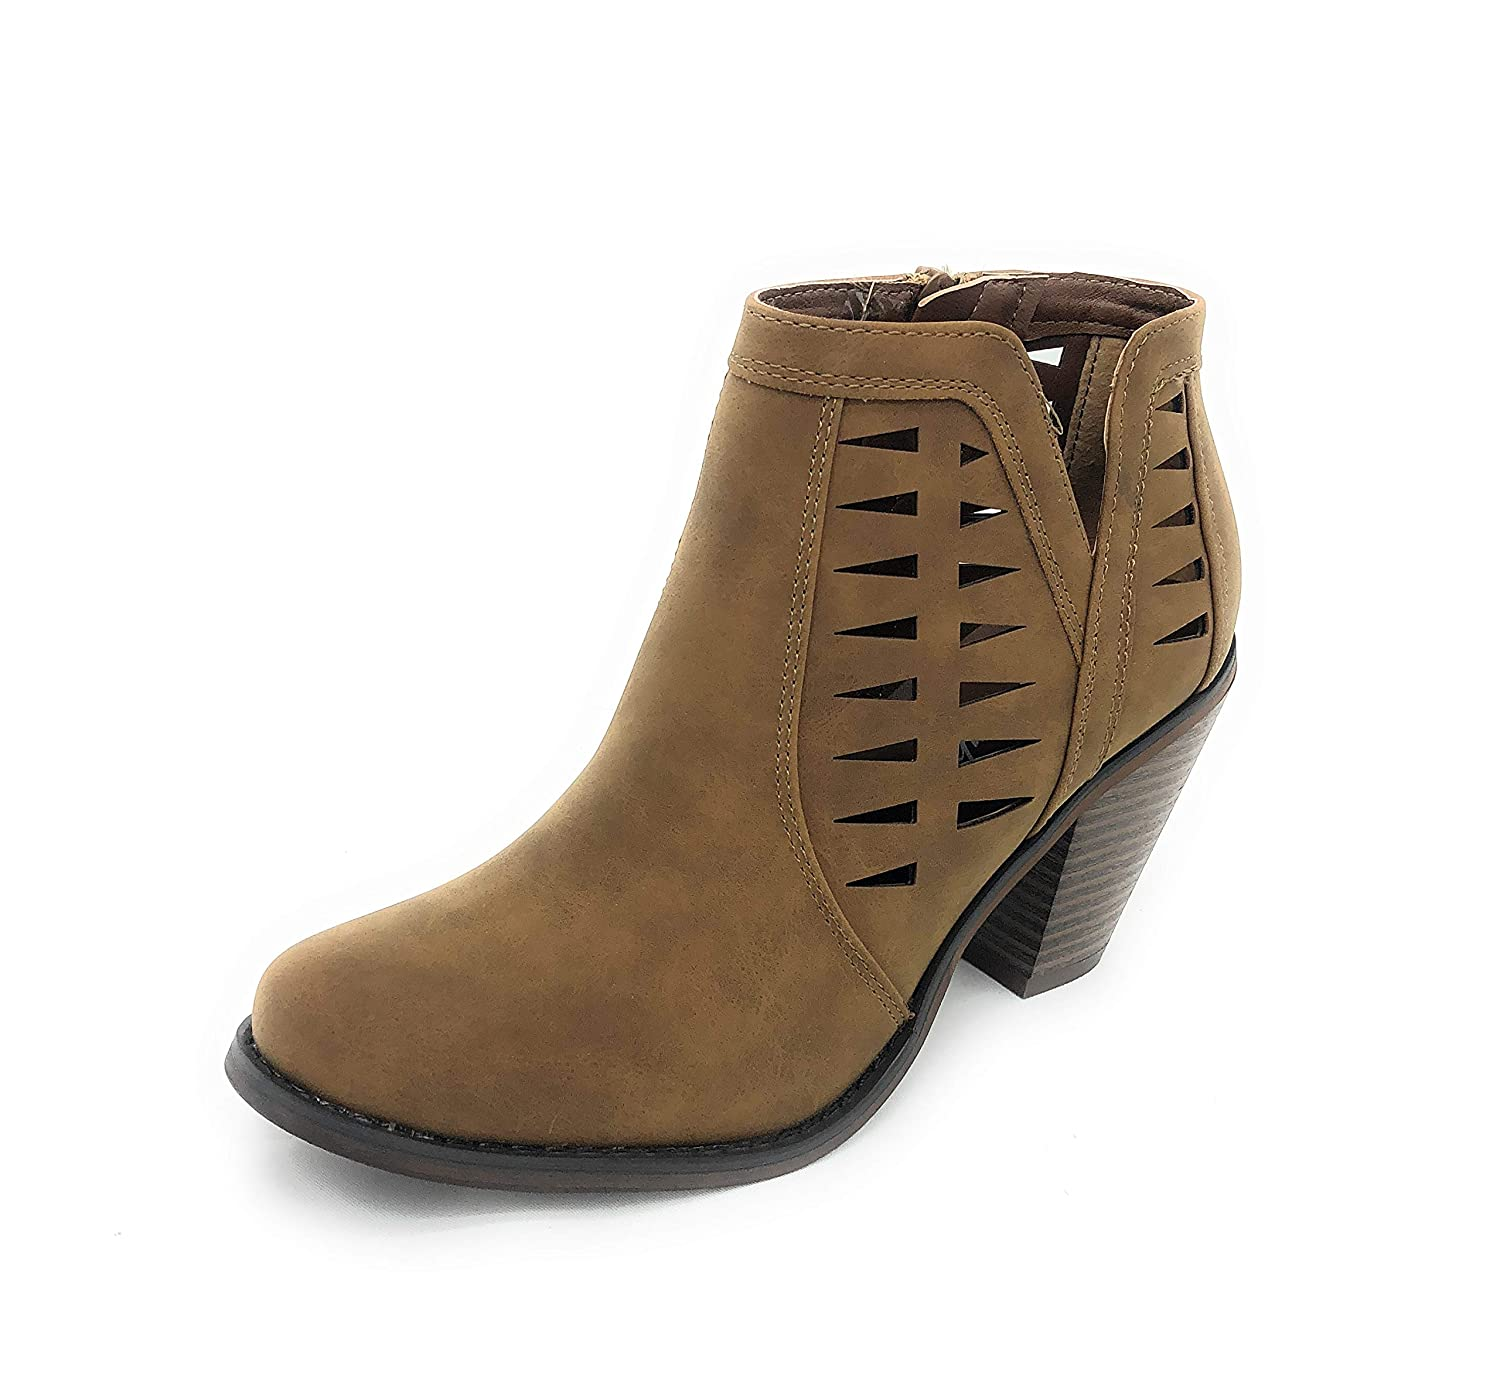 Tan-irene-02 SOLE COLLECTION Faux Leather Suede Strap Side Zipper Chunky Block Heels Dress Ankle Boots